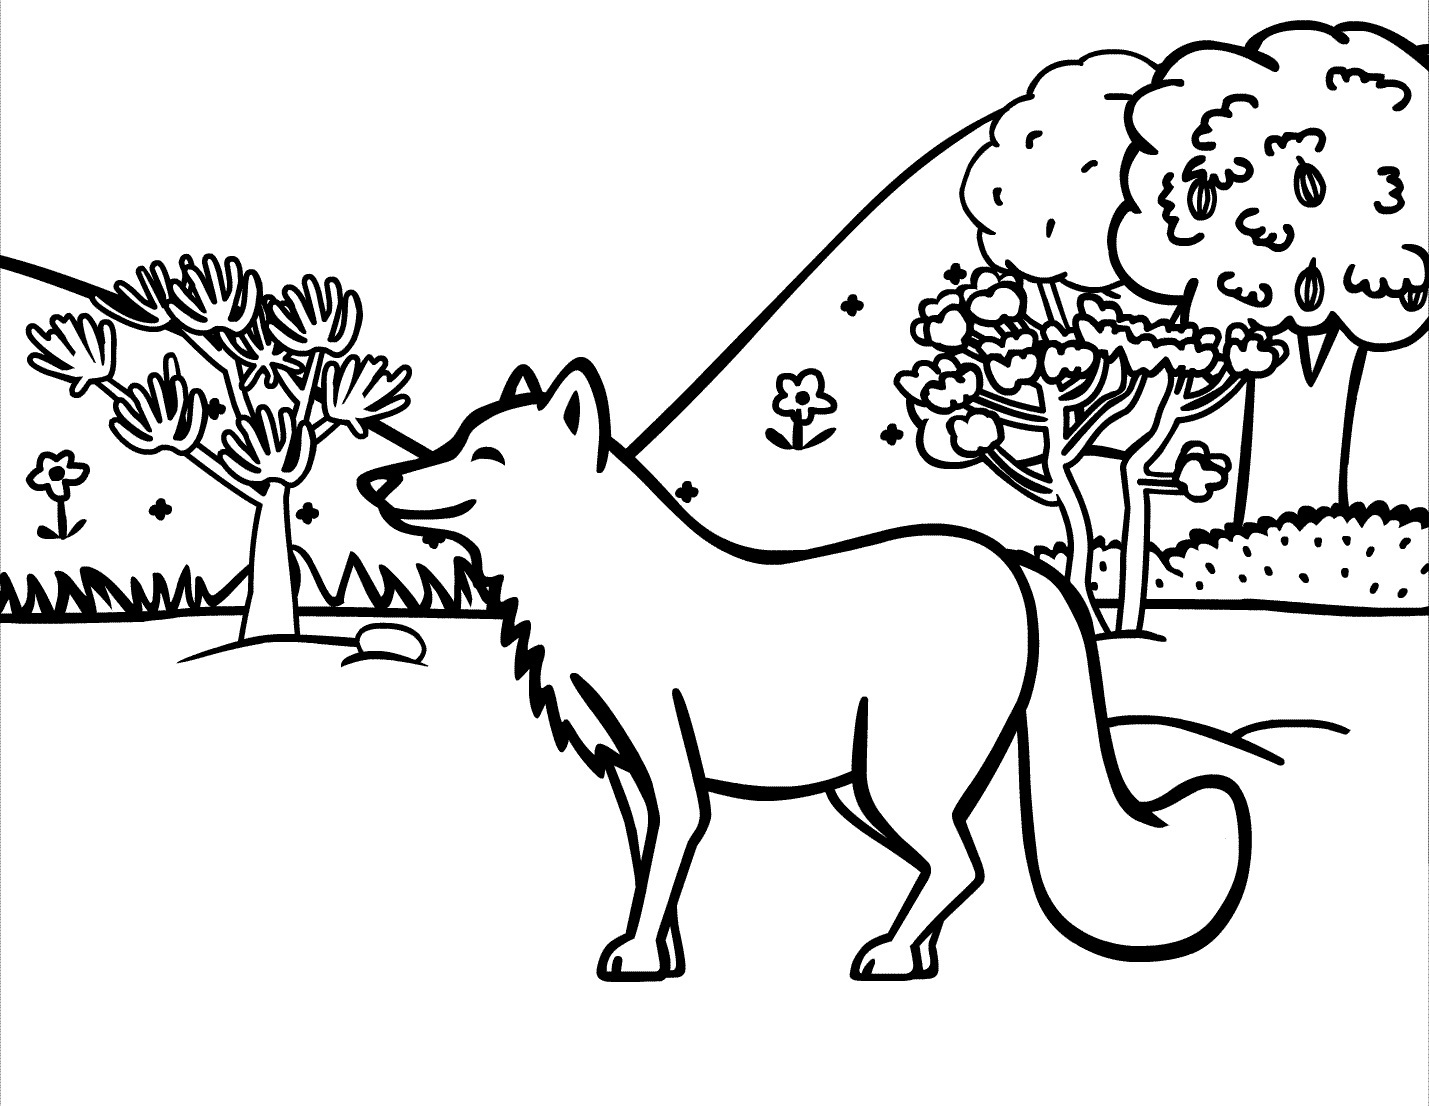 Geeky image with regard to printable fox coloring pages